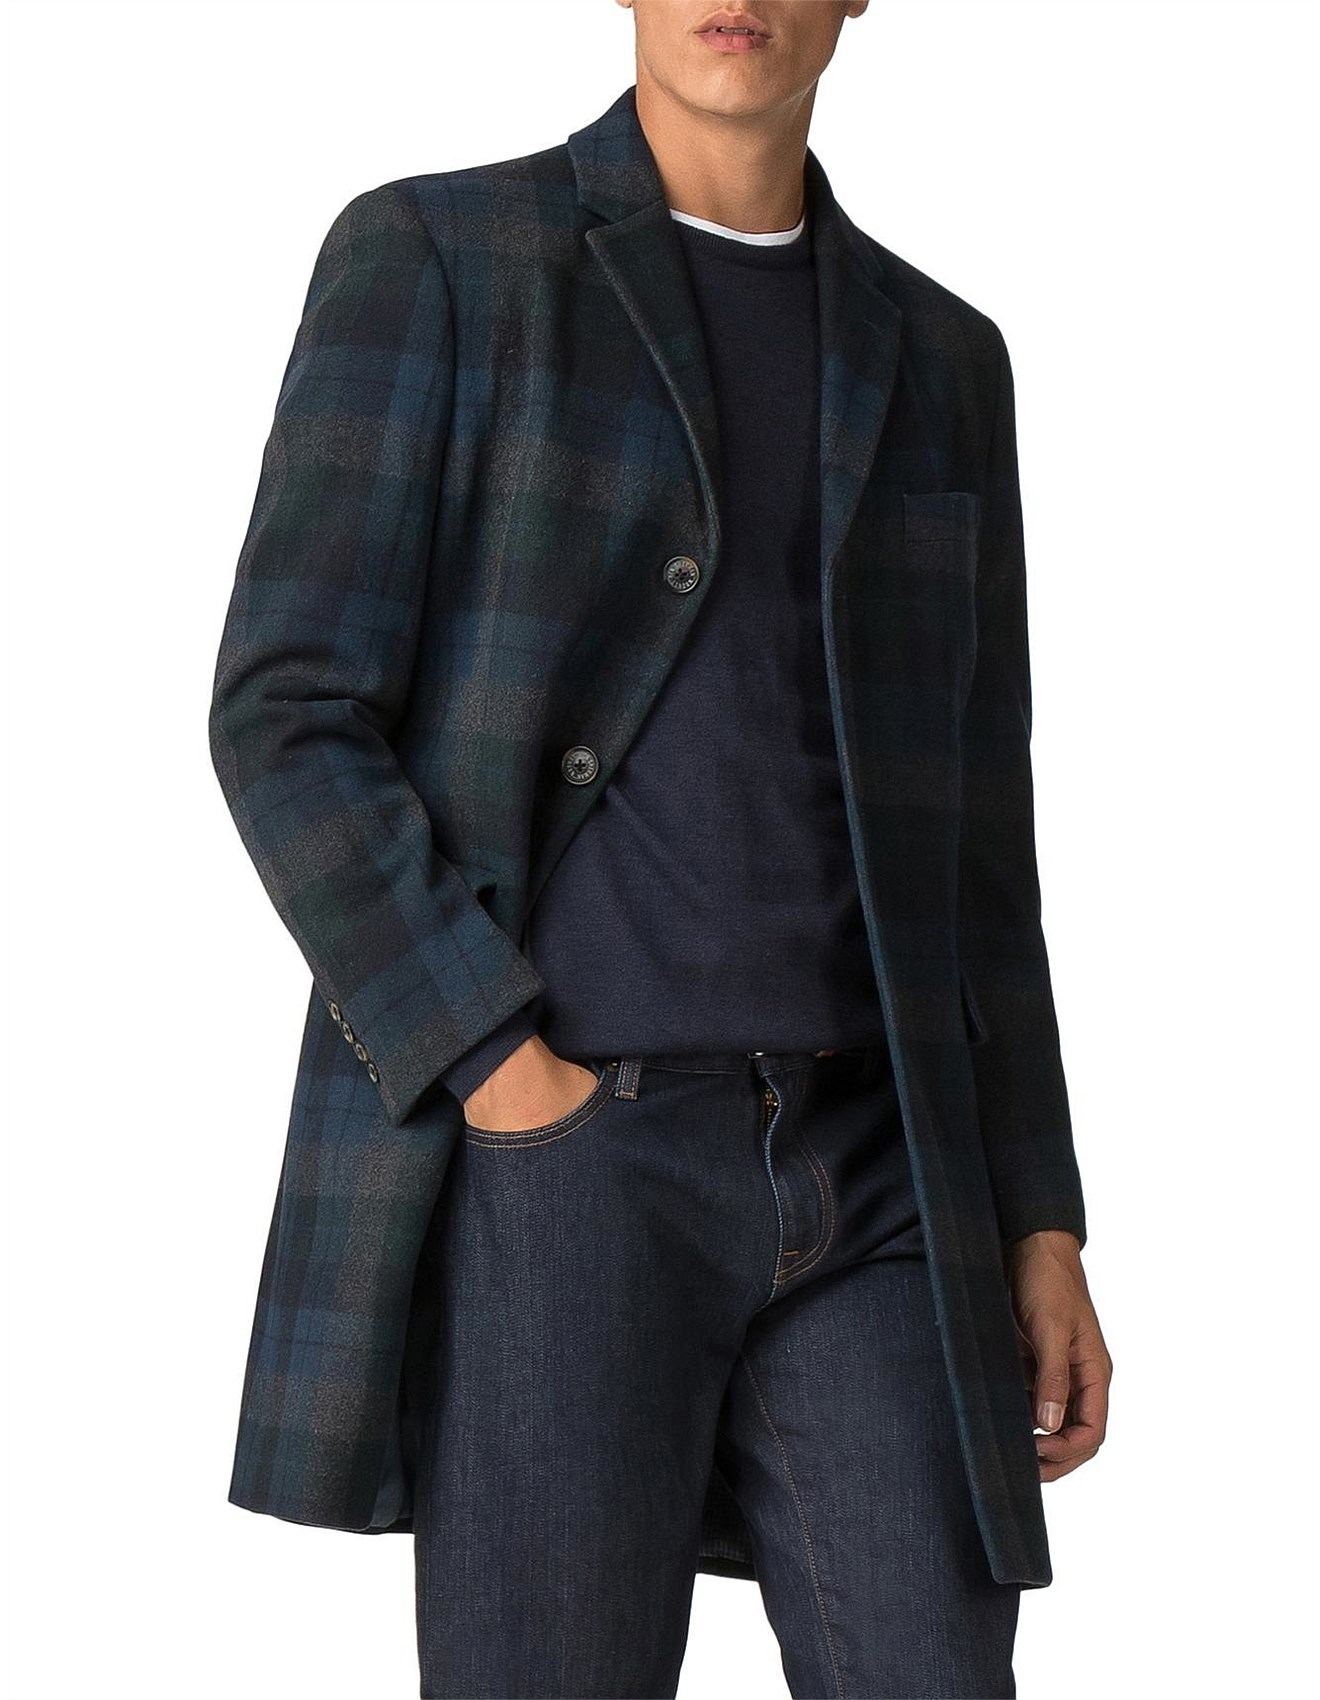 4759981c3d Men's Jackets & Coats | Leather Jackets Online | David Jones - STATEMENT  CHECK COAT DARK GREEN